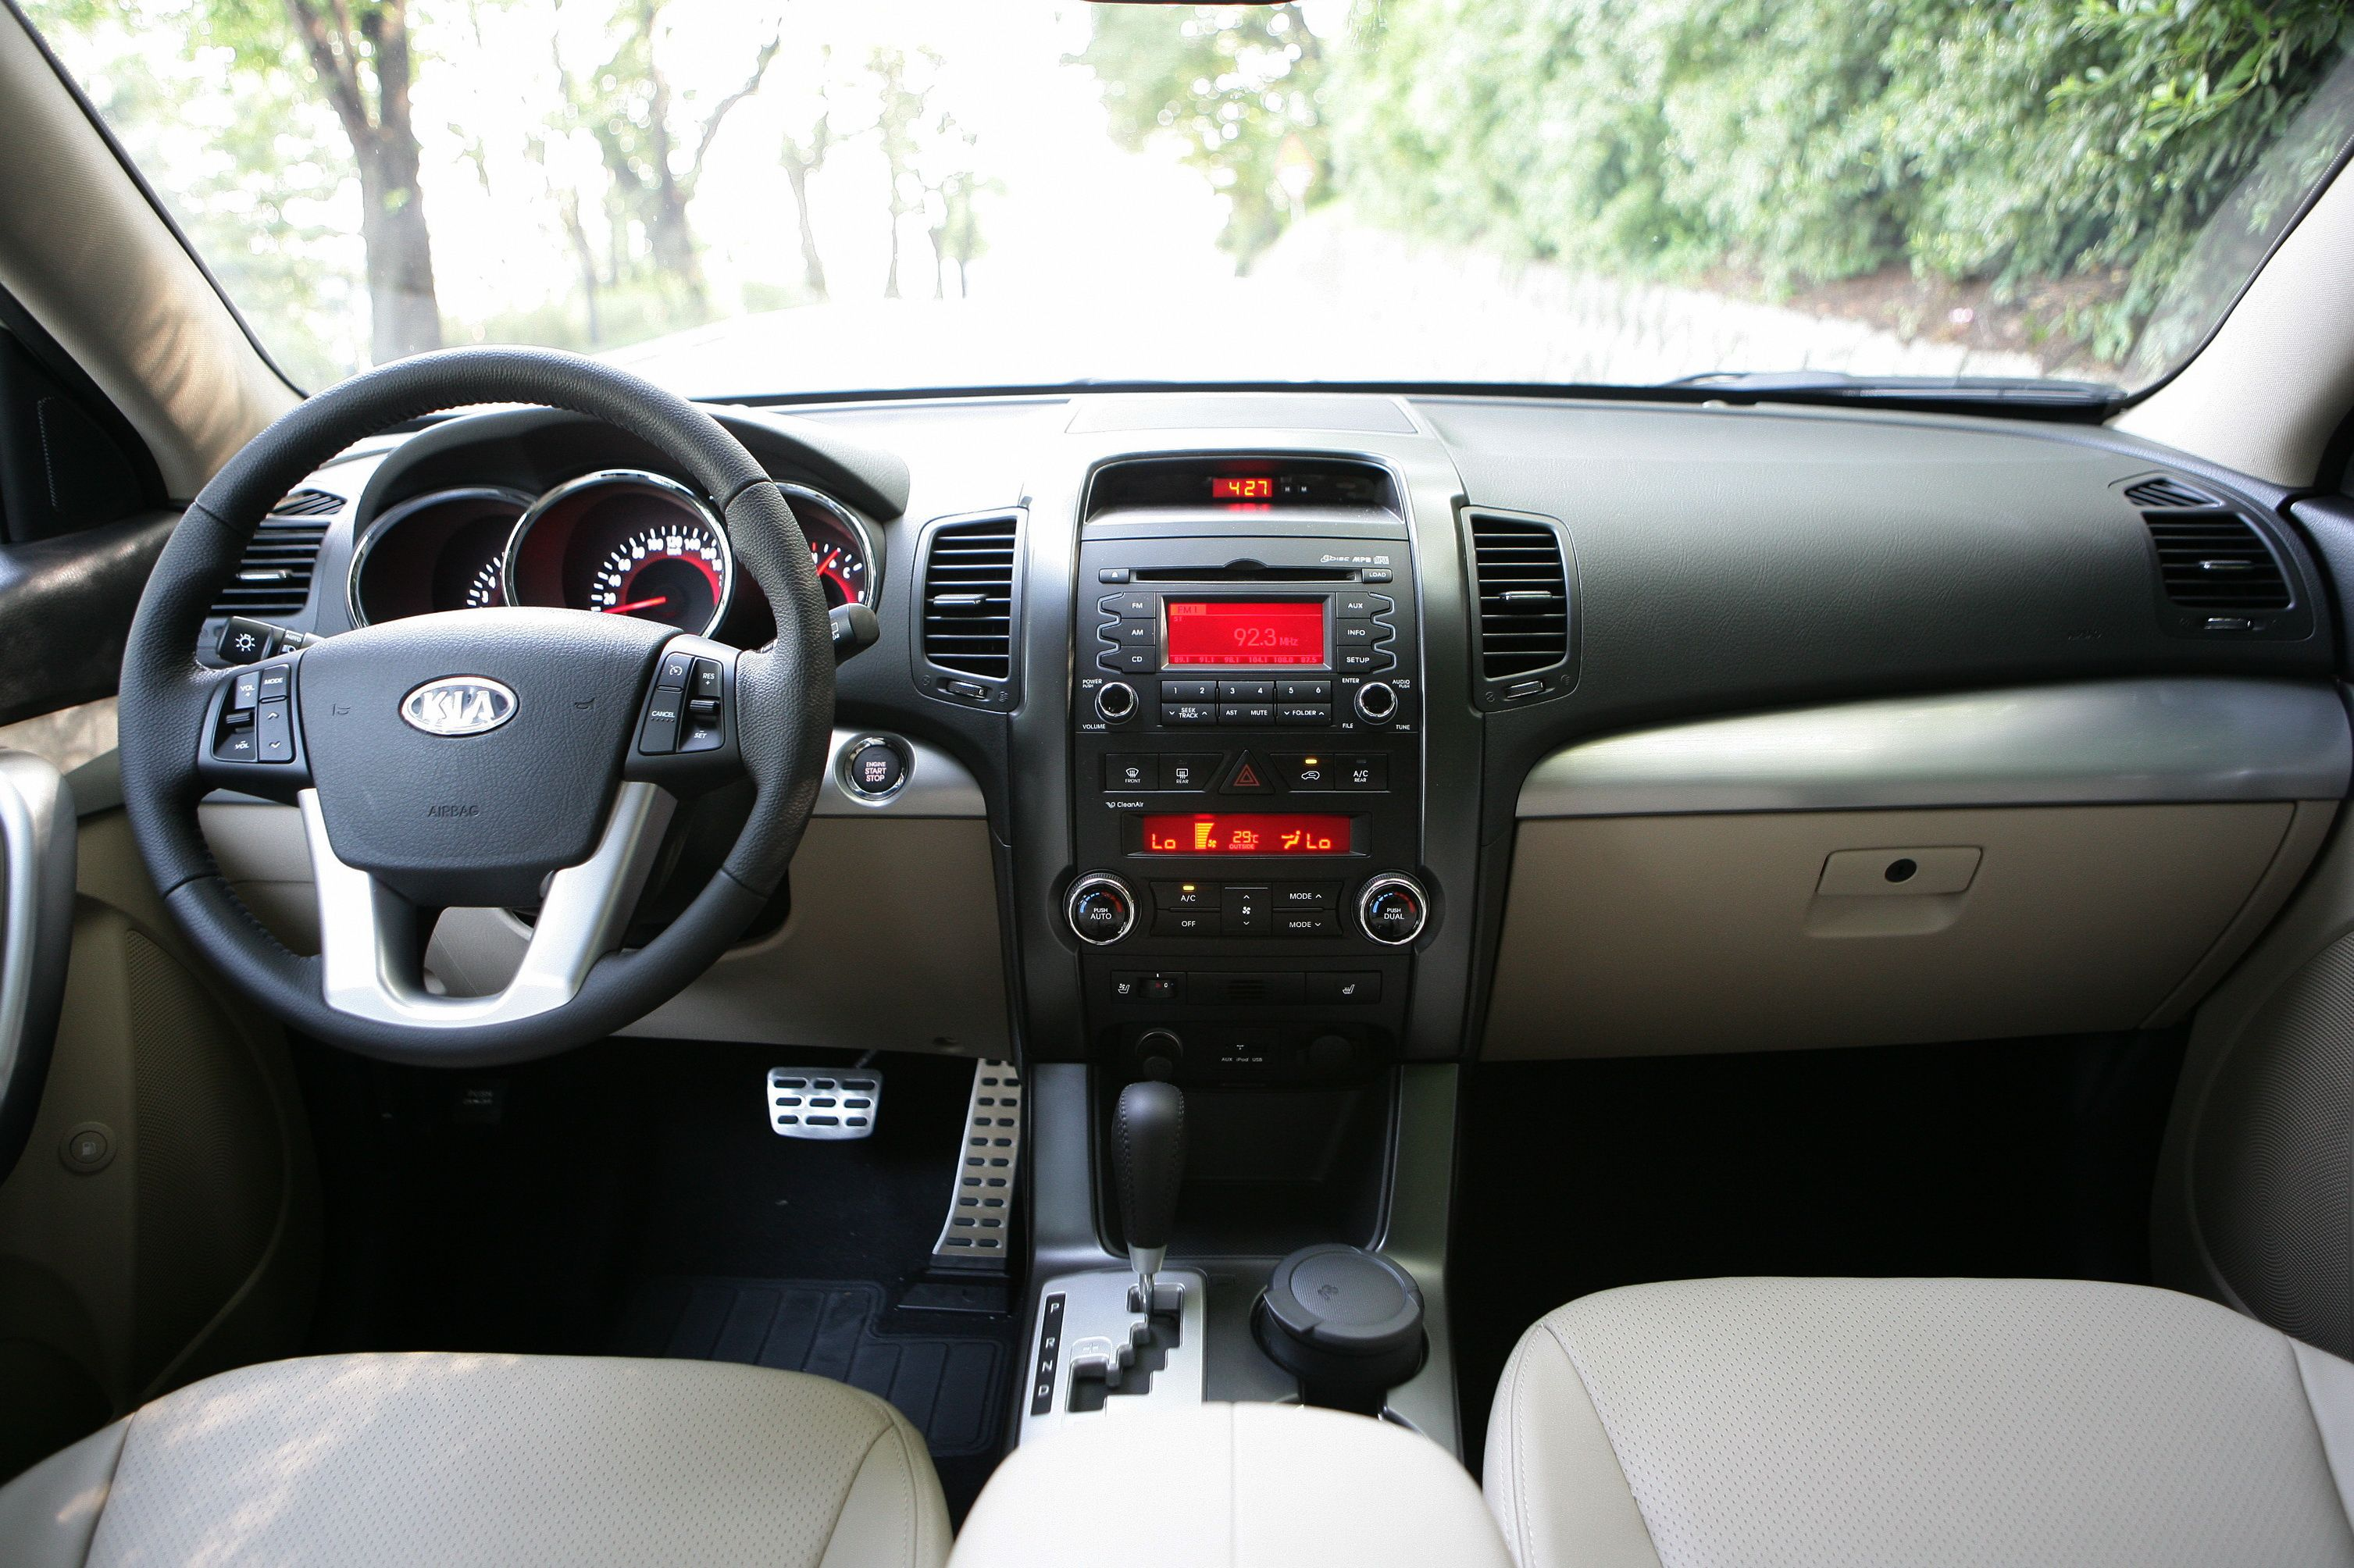 power line sell kia of blog sorento the buy with in half used tap review complete petrol scrap and on substantial second car version came a litres